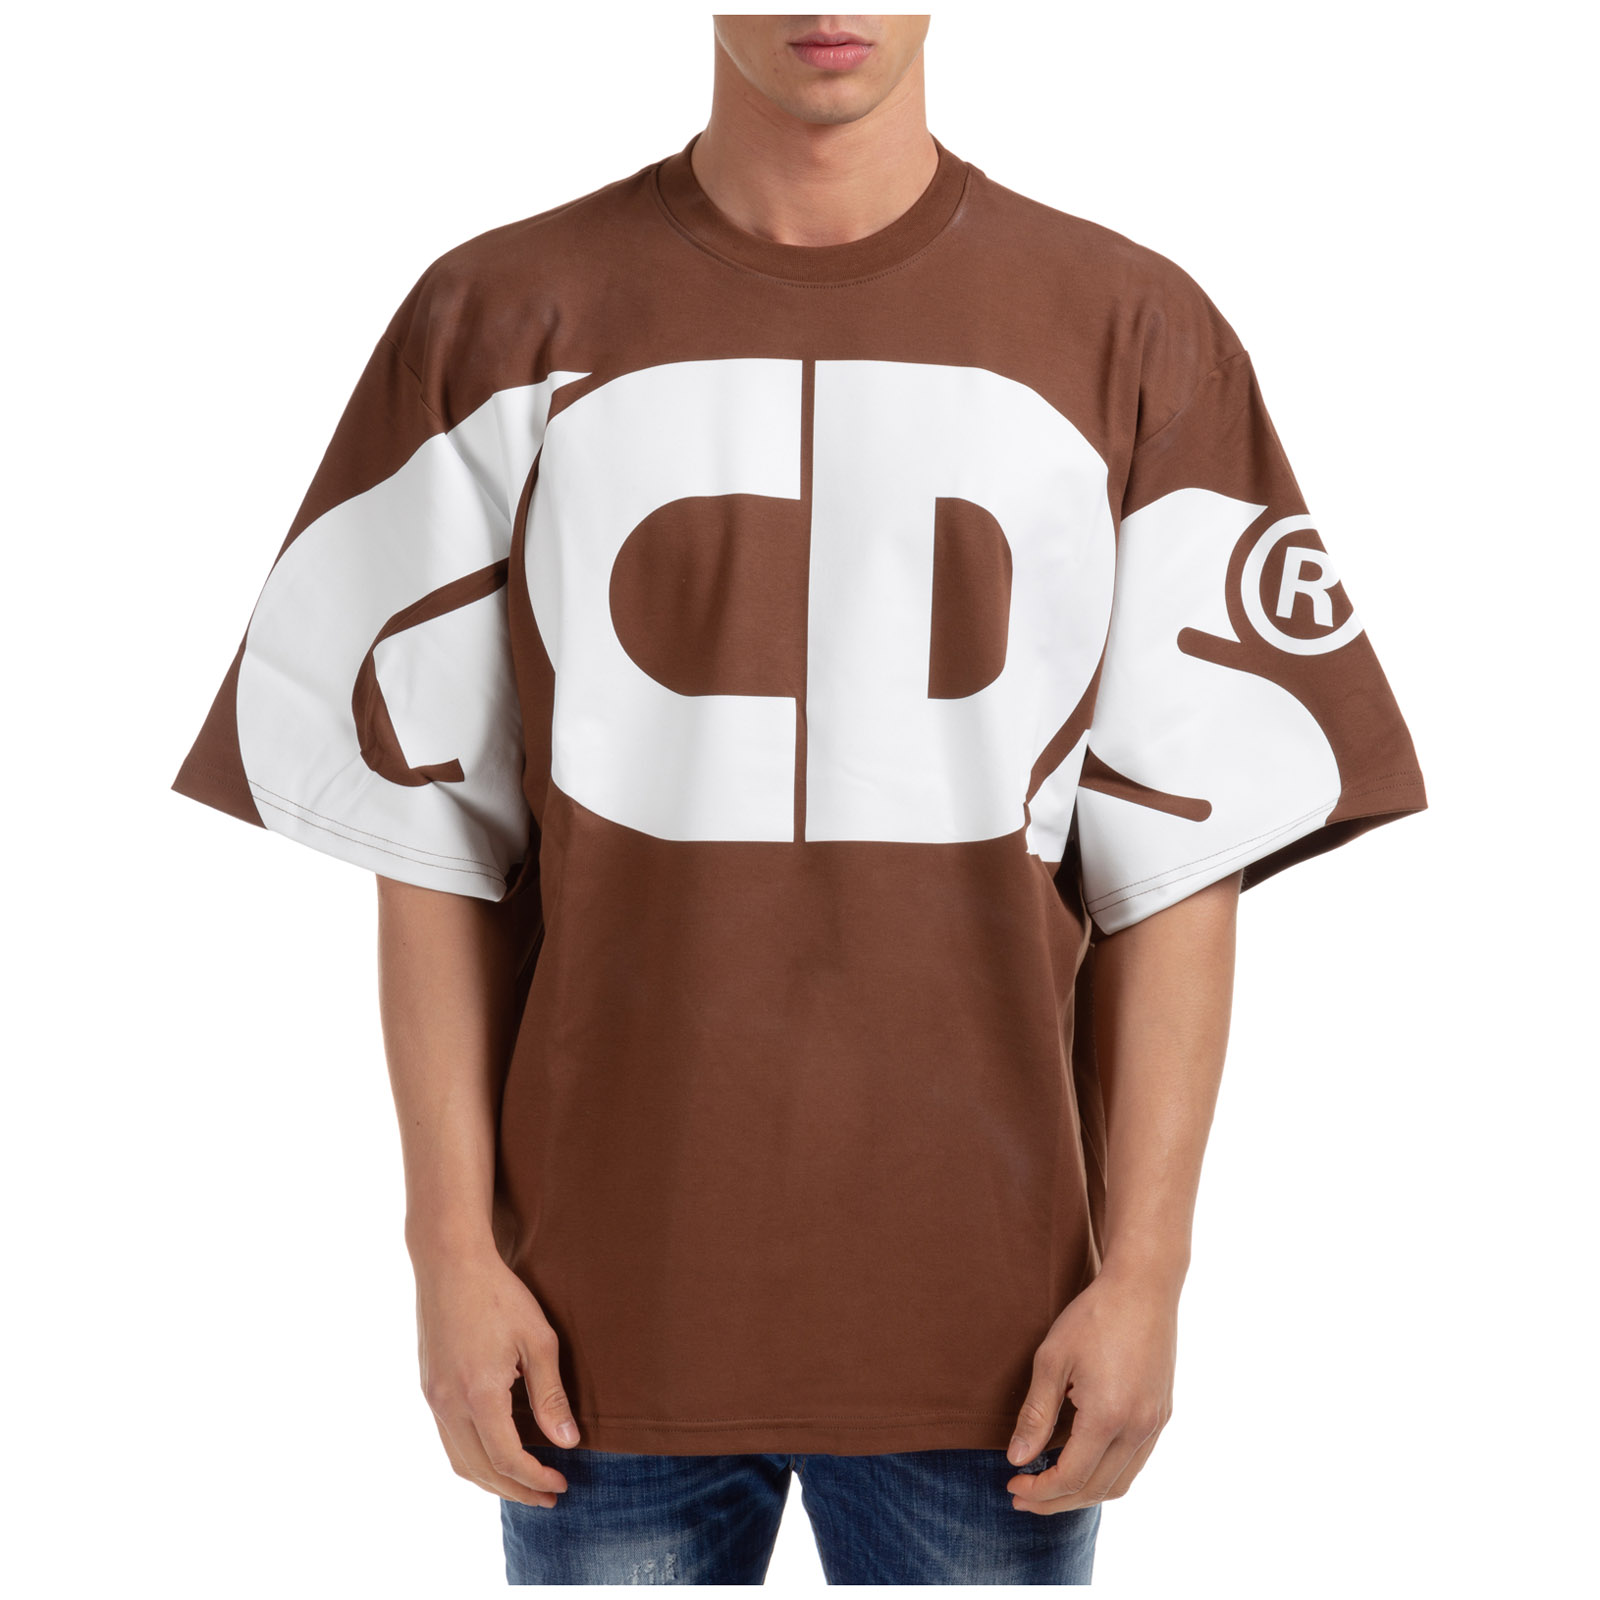 GCDS MEN'S SHORT SLEEVE T-SHIRT CREW NECKLINE JUMPER MACRO LOGO